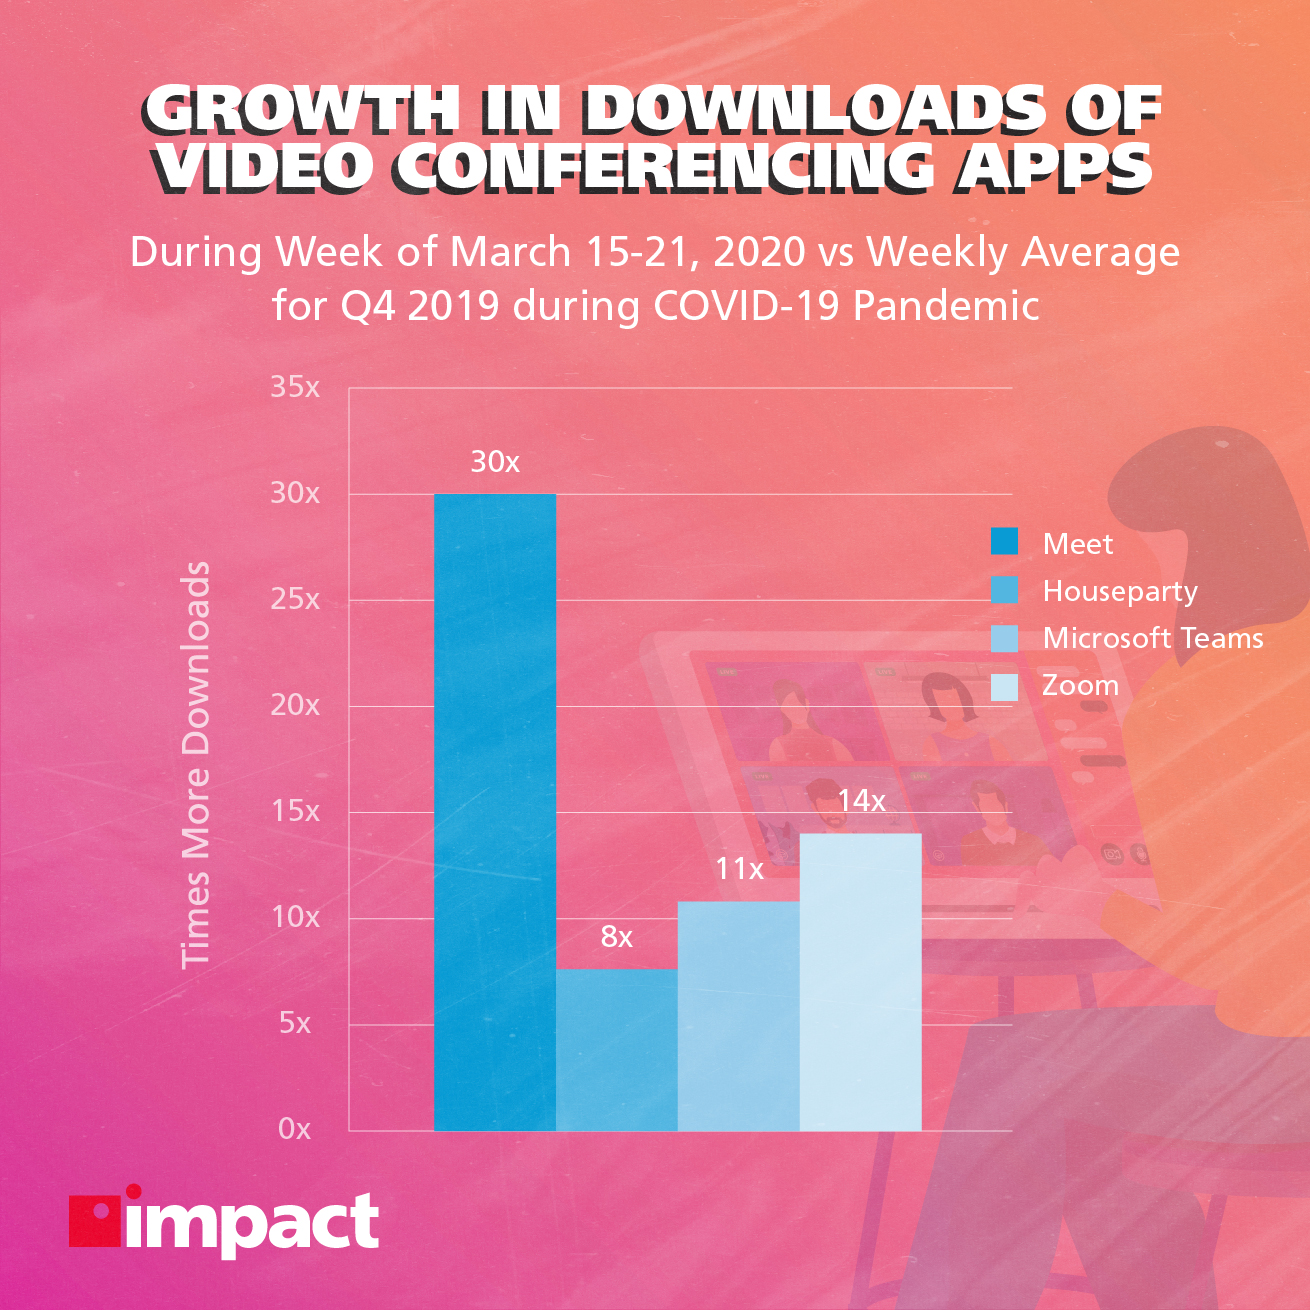 Growth in downloads of video conferencing apps